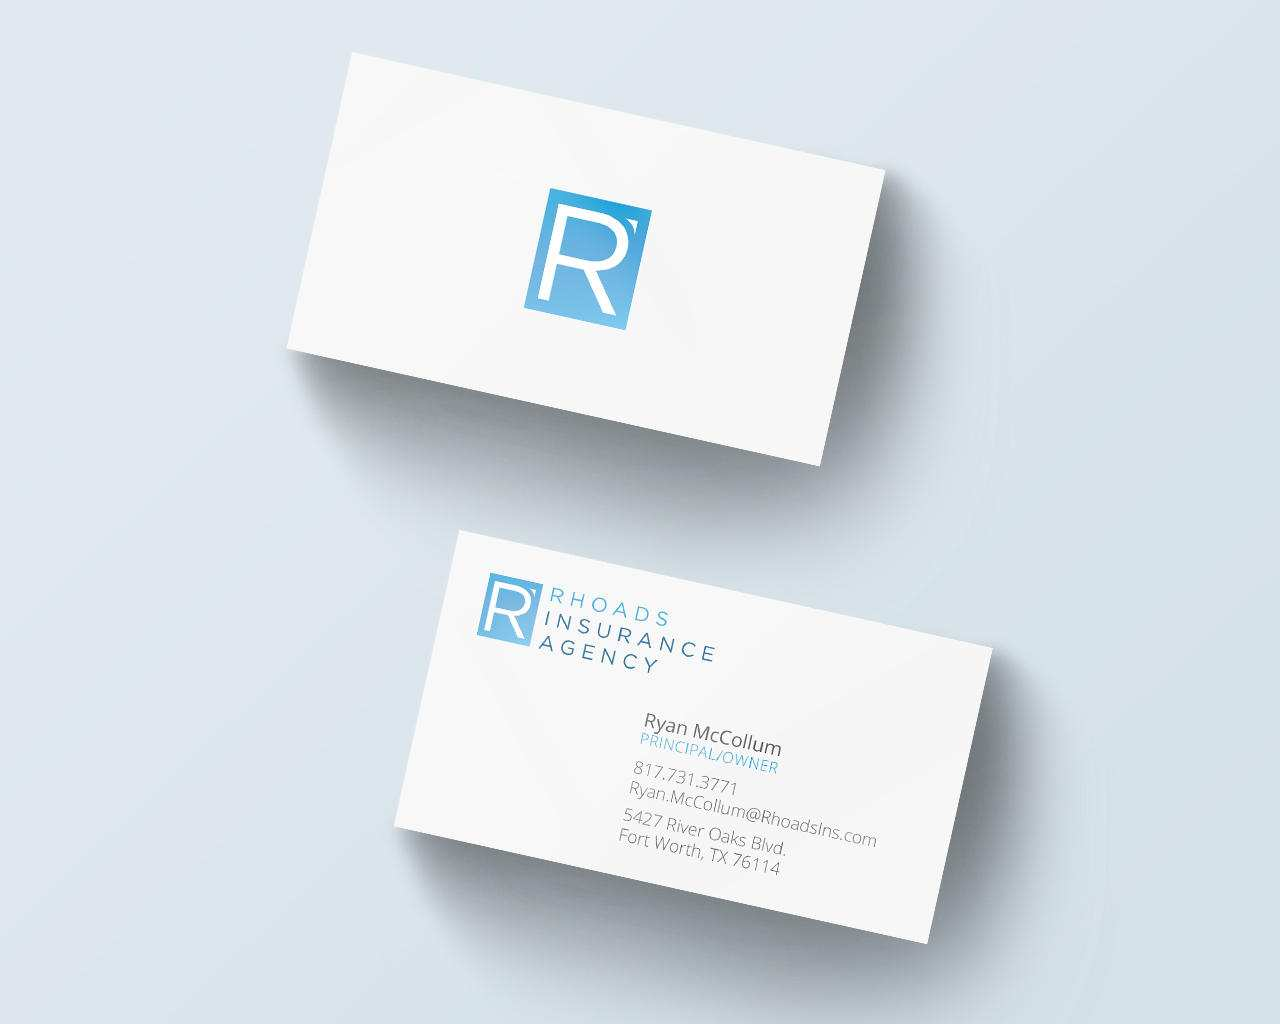 https://smartguests.com/images/products_gallery_images/182_custom_business_cards50.jpg